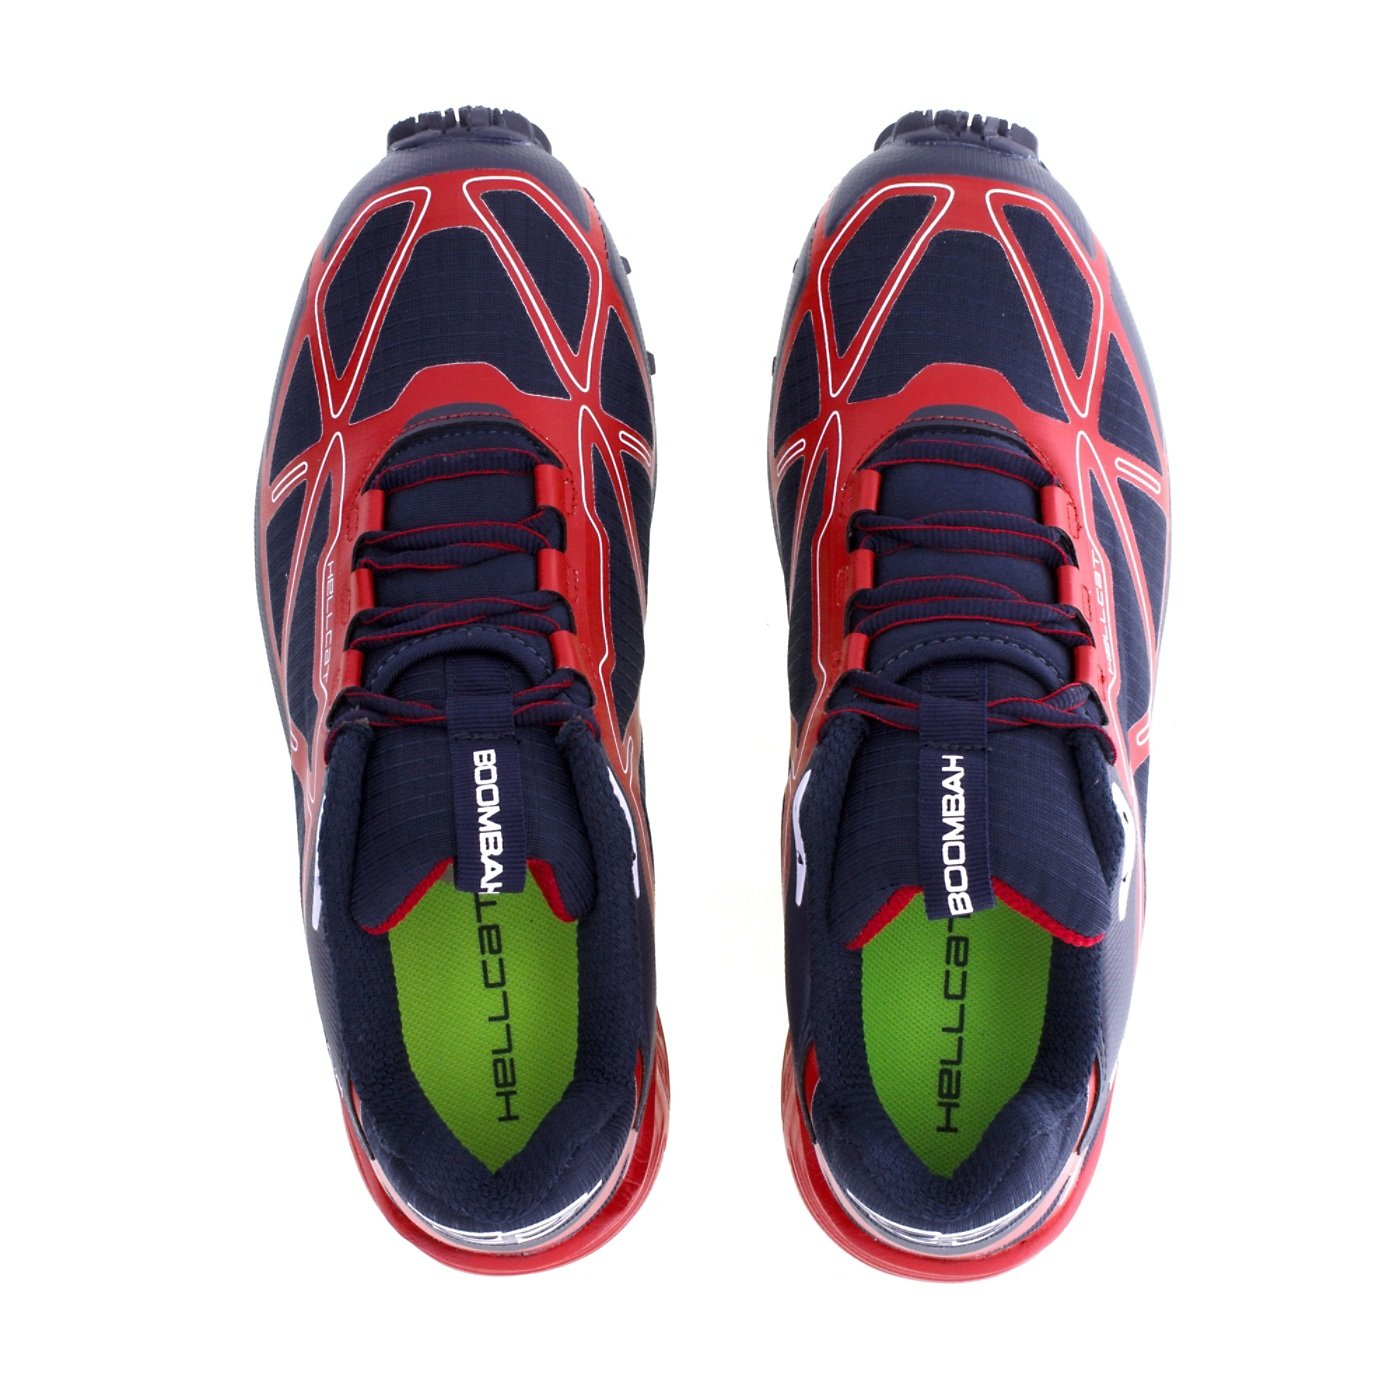 Boombah Men's Hellcat Trail Shoe - 14 Color Options - Multiple Sizes B073X65M95 13|Navy/Red